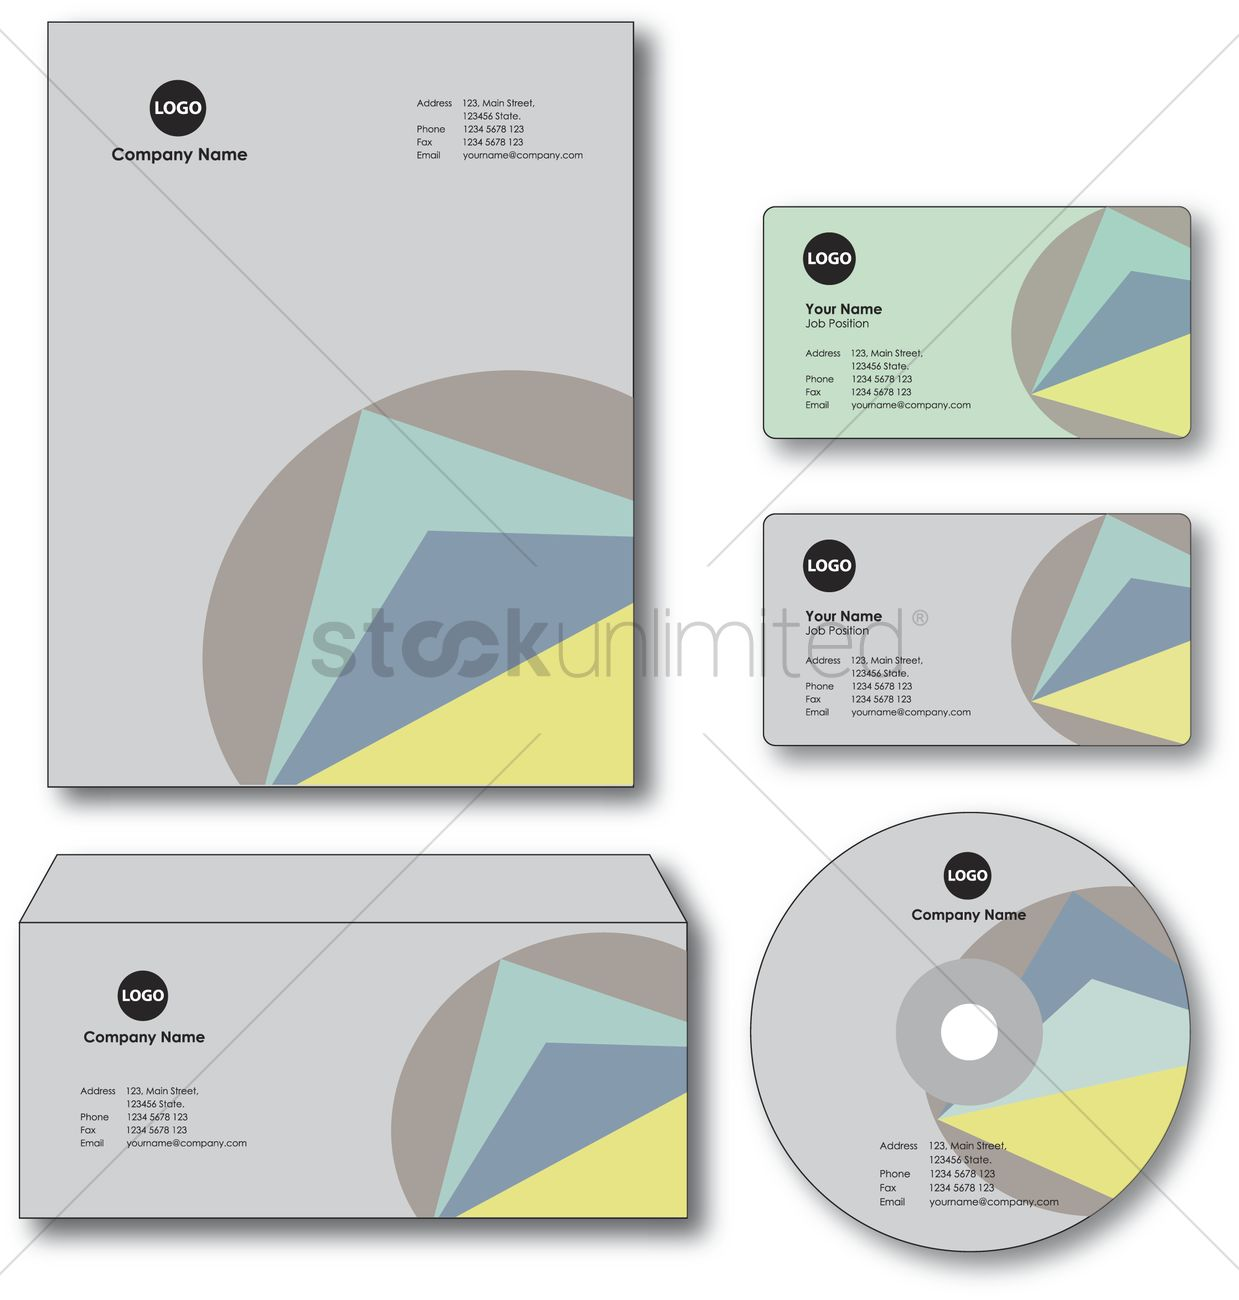 Company paper envelope business card and cd vector image 1235451 company paper envelope business card and cd vector graphic reheart Gallery